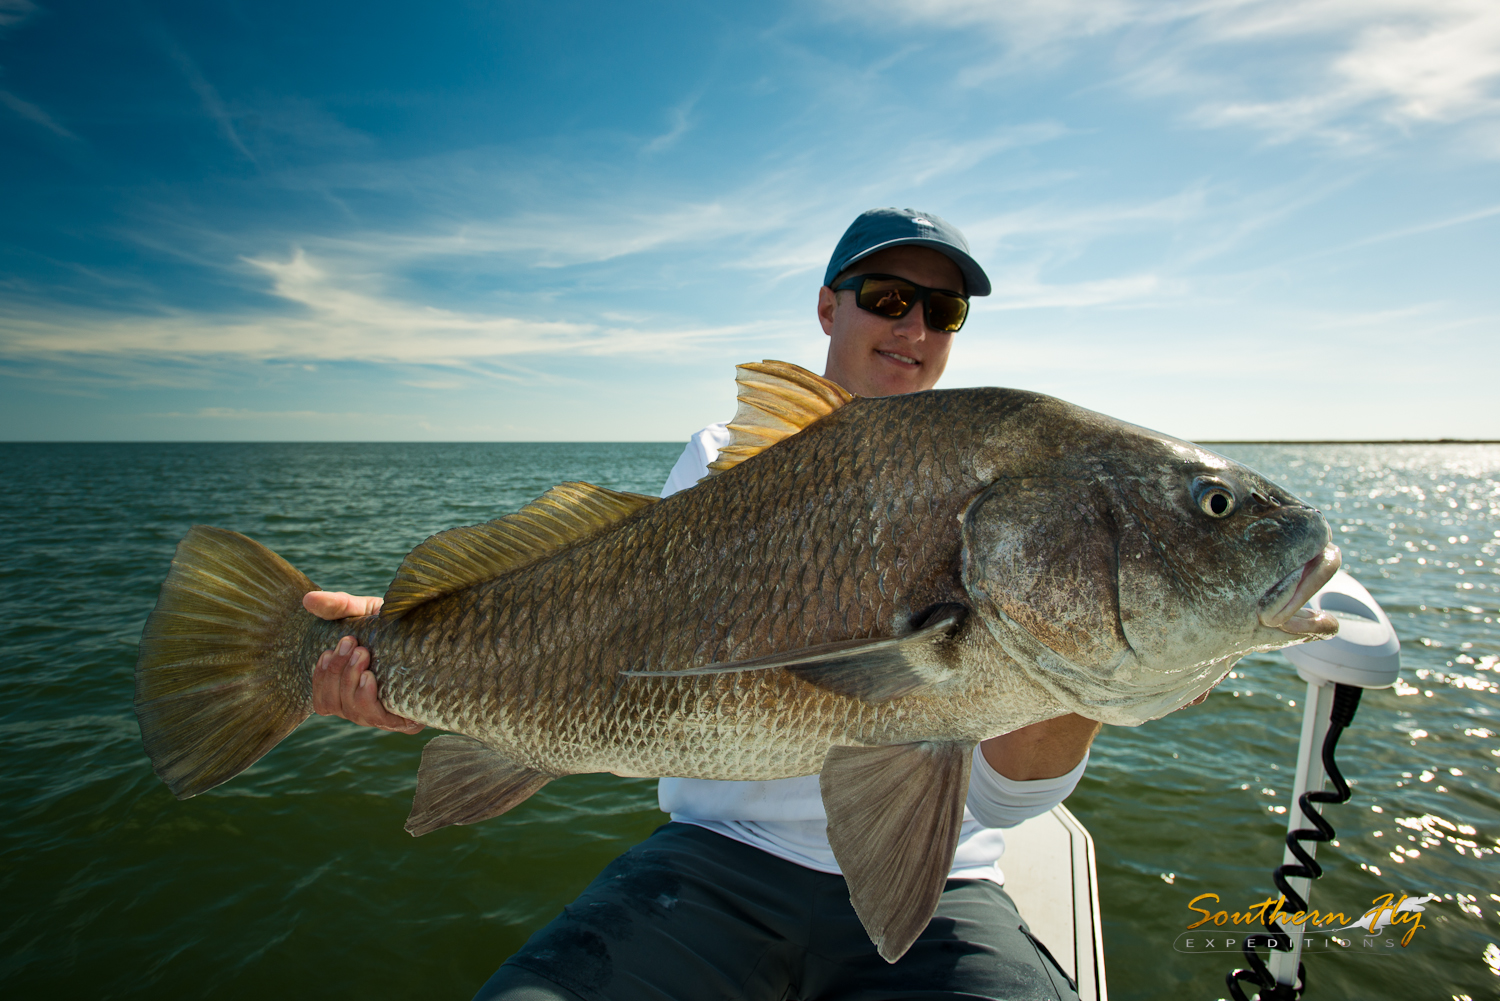 Monster Reds Fly Fishing Guide Venice Louisiana Southern Fly Expeditions